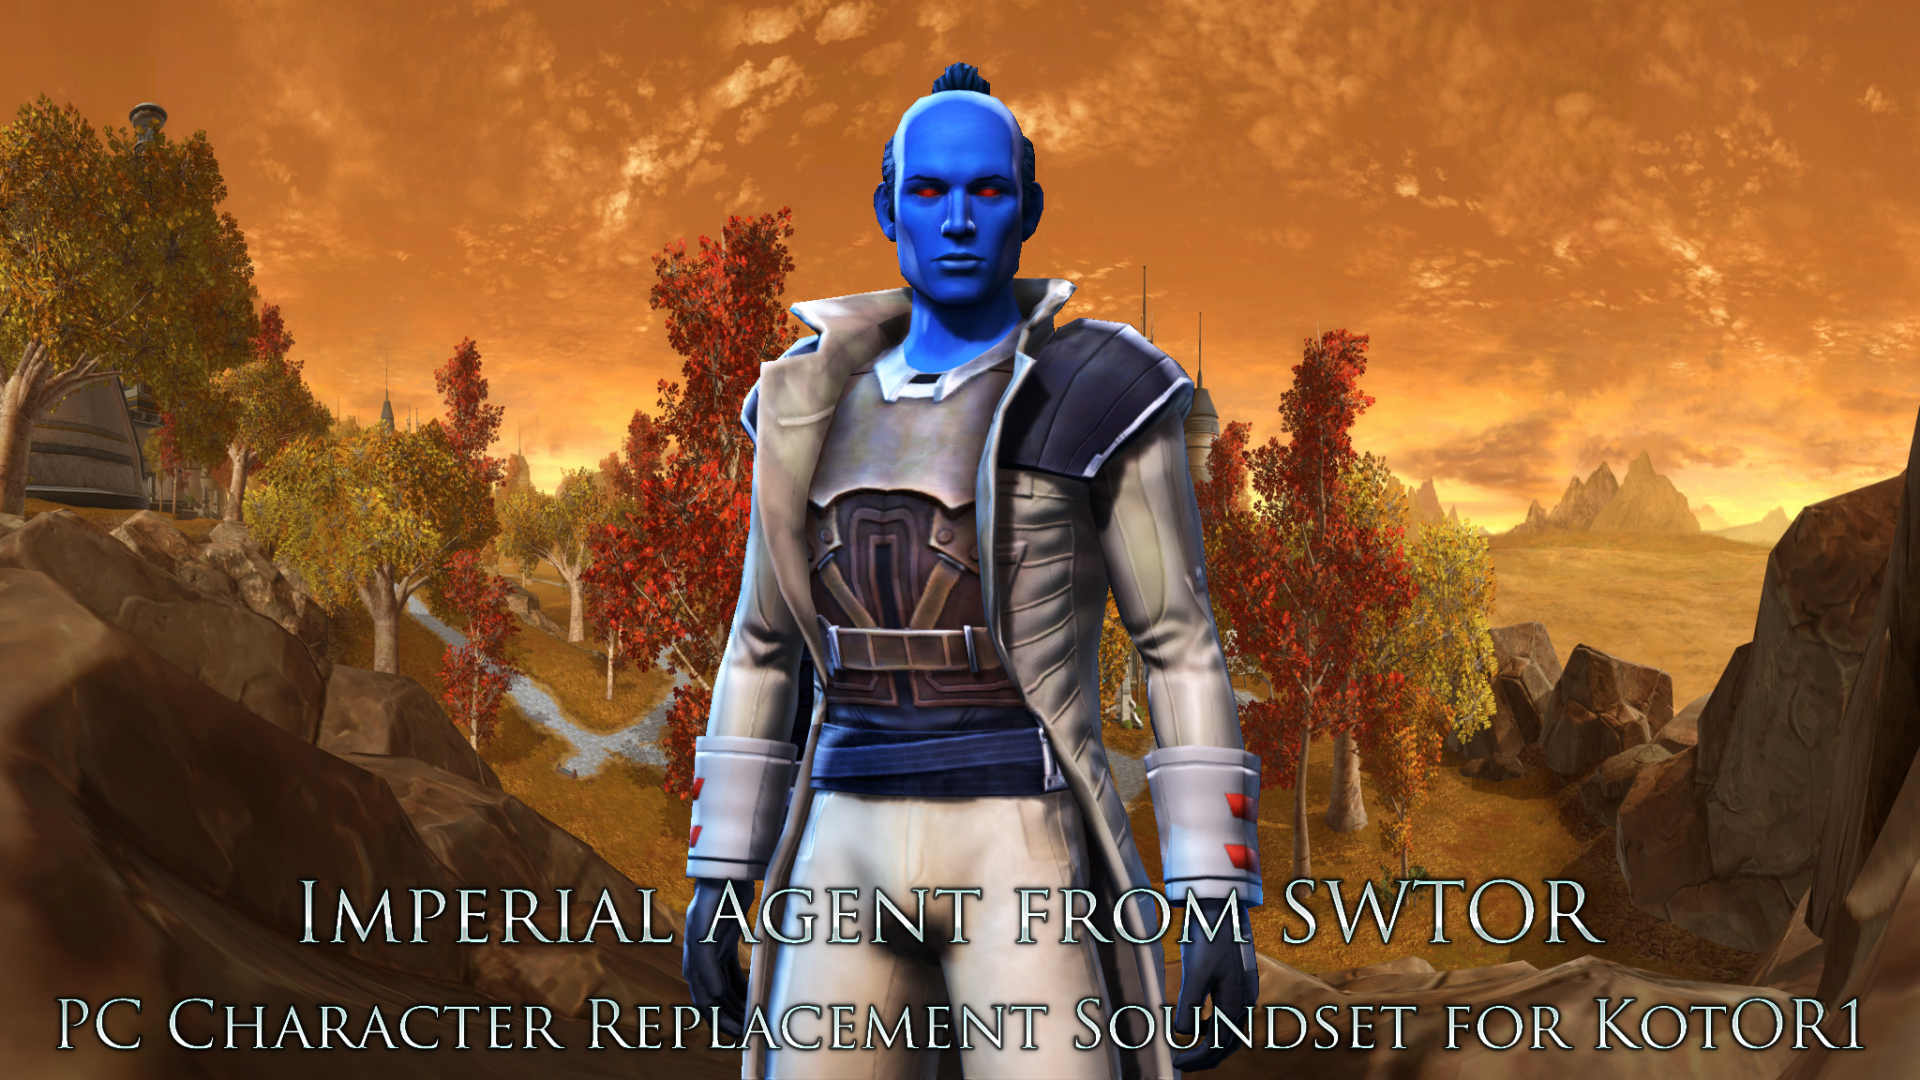 [K1] Imperial Agent (Male) - PC Replacement Soundset